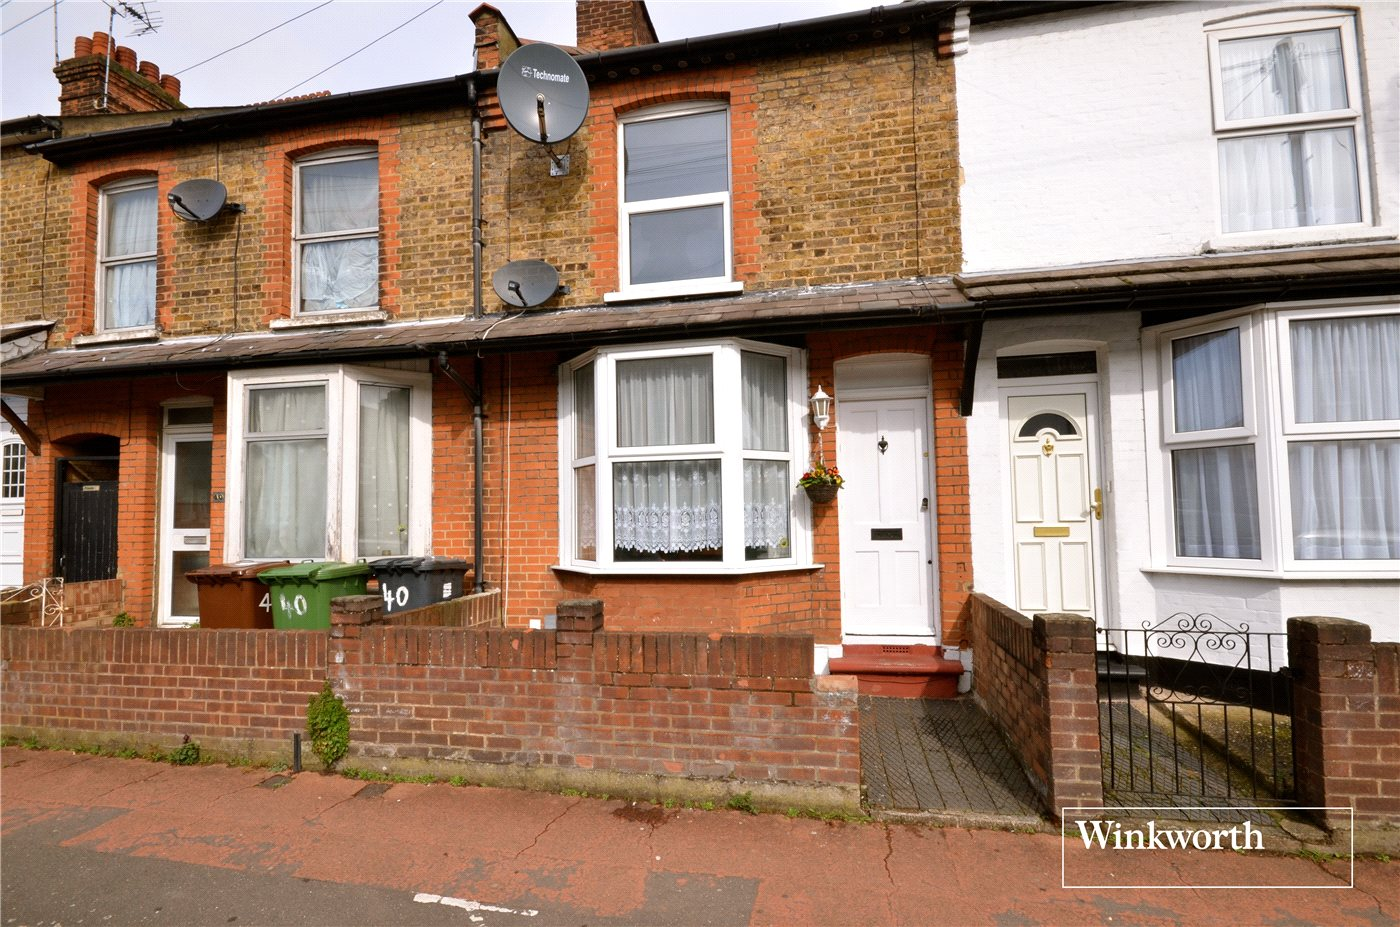 2 Bedrooms Terraced House for sale in Malden Road, Borehamwood, Hertfordshire, WD6